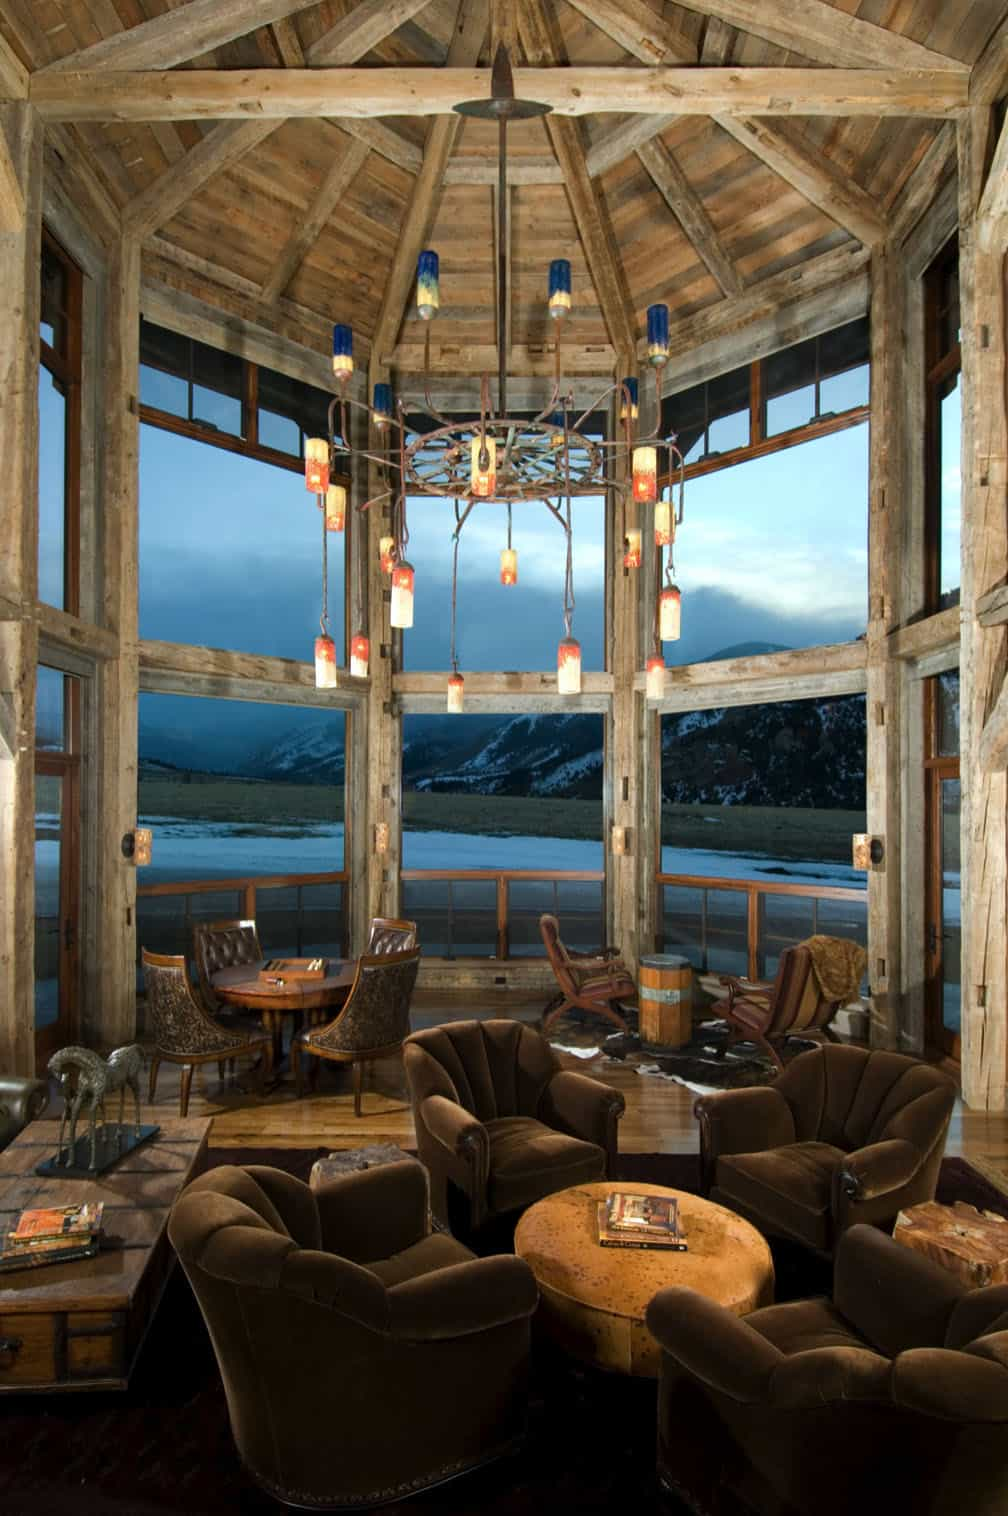 Peaceful rustic refuge nestled in majestic Beartooth Mountains, Montana